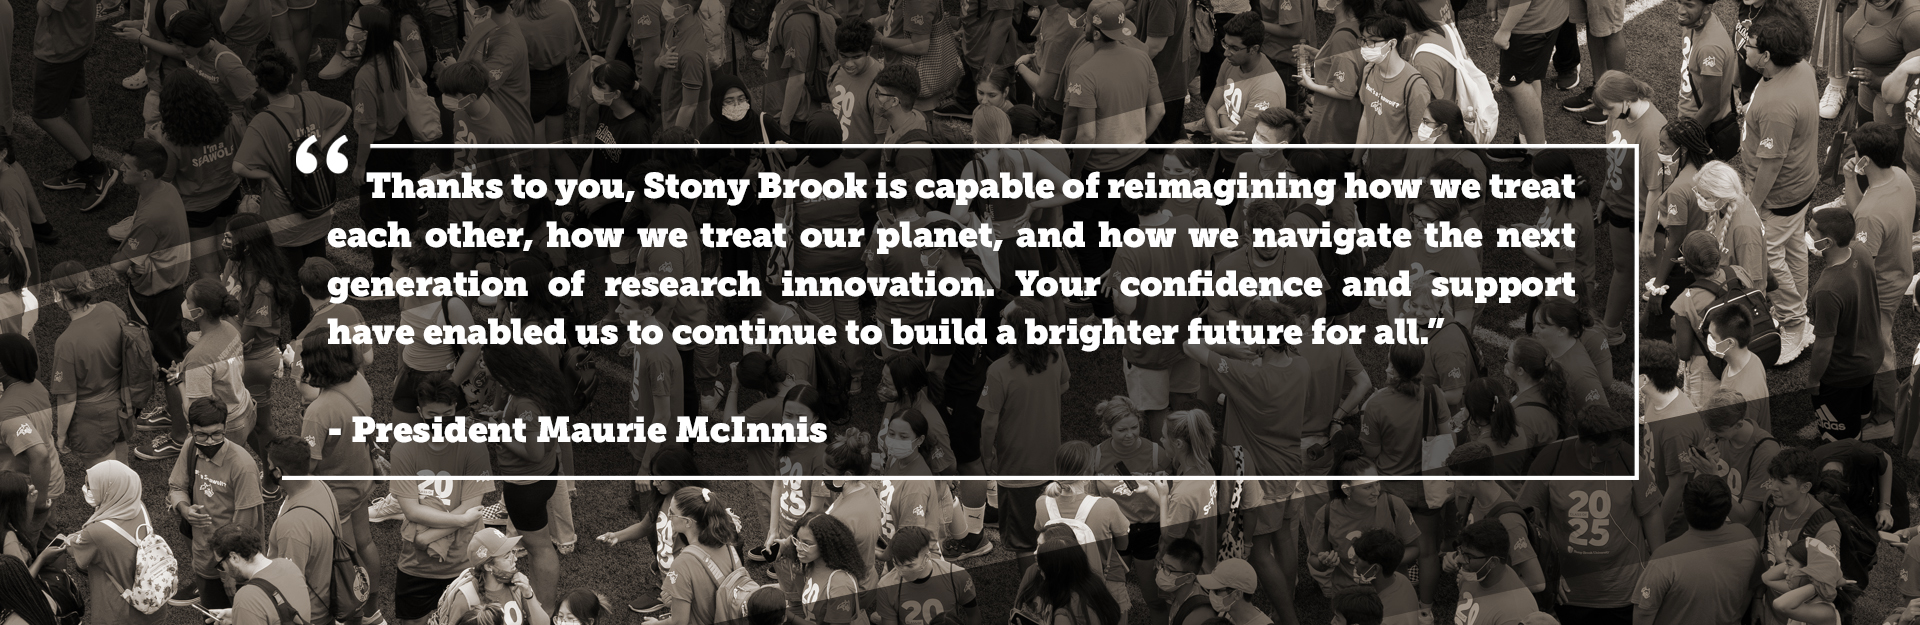 Thanks to you, Stony Brook is capable of reimagining how we treat each other, how we treat our planet, and how we navigate the next generation of research innovation. Your confidence and support have enabled us to continue to build a brighter future for all. - President Maurie McInnis